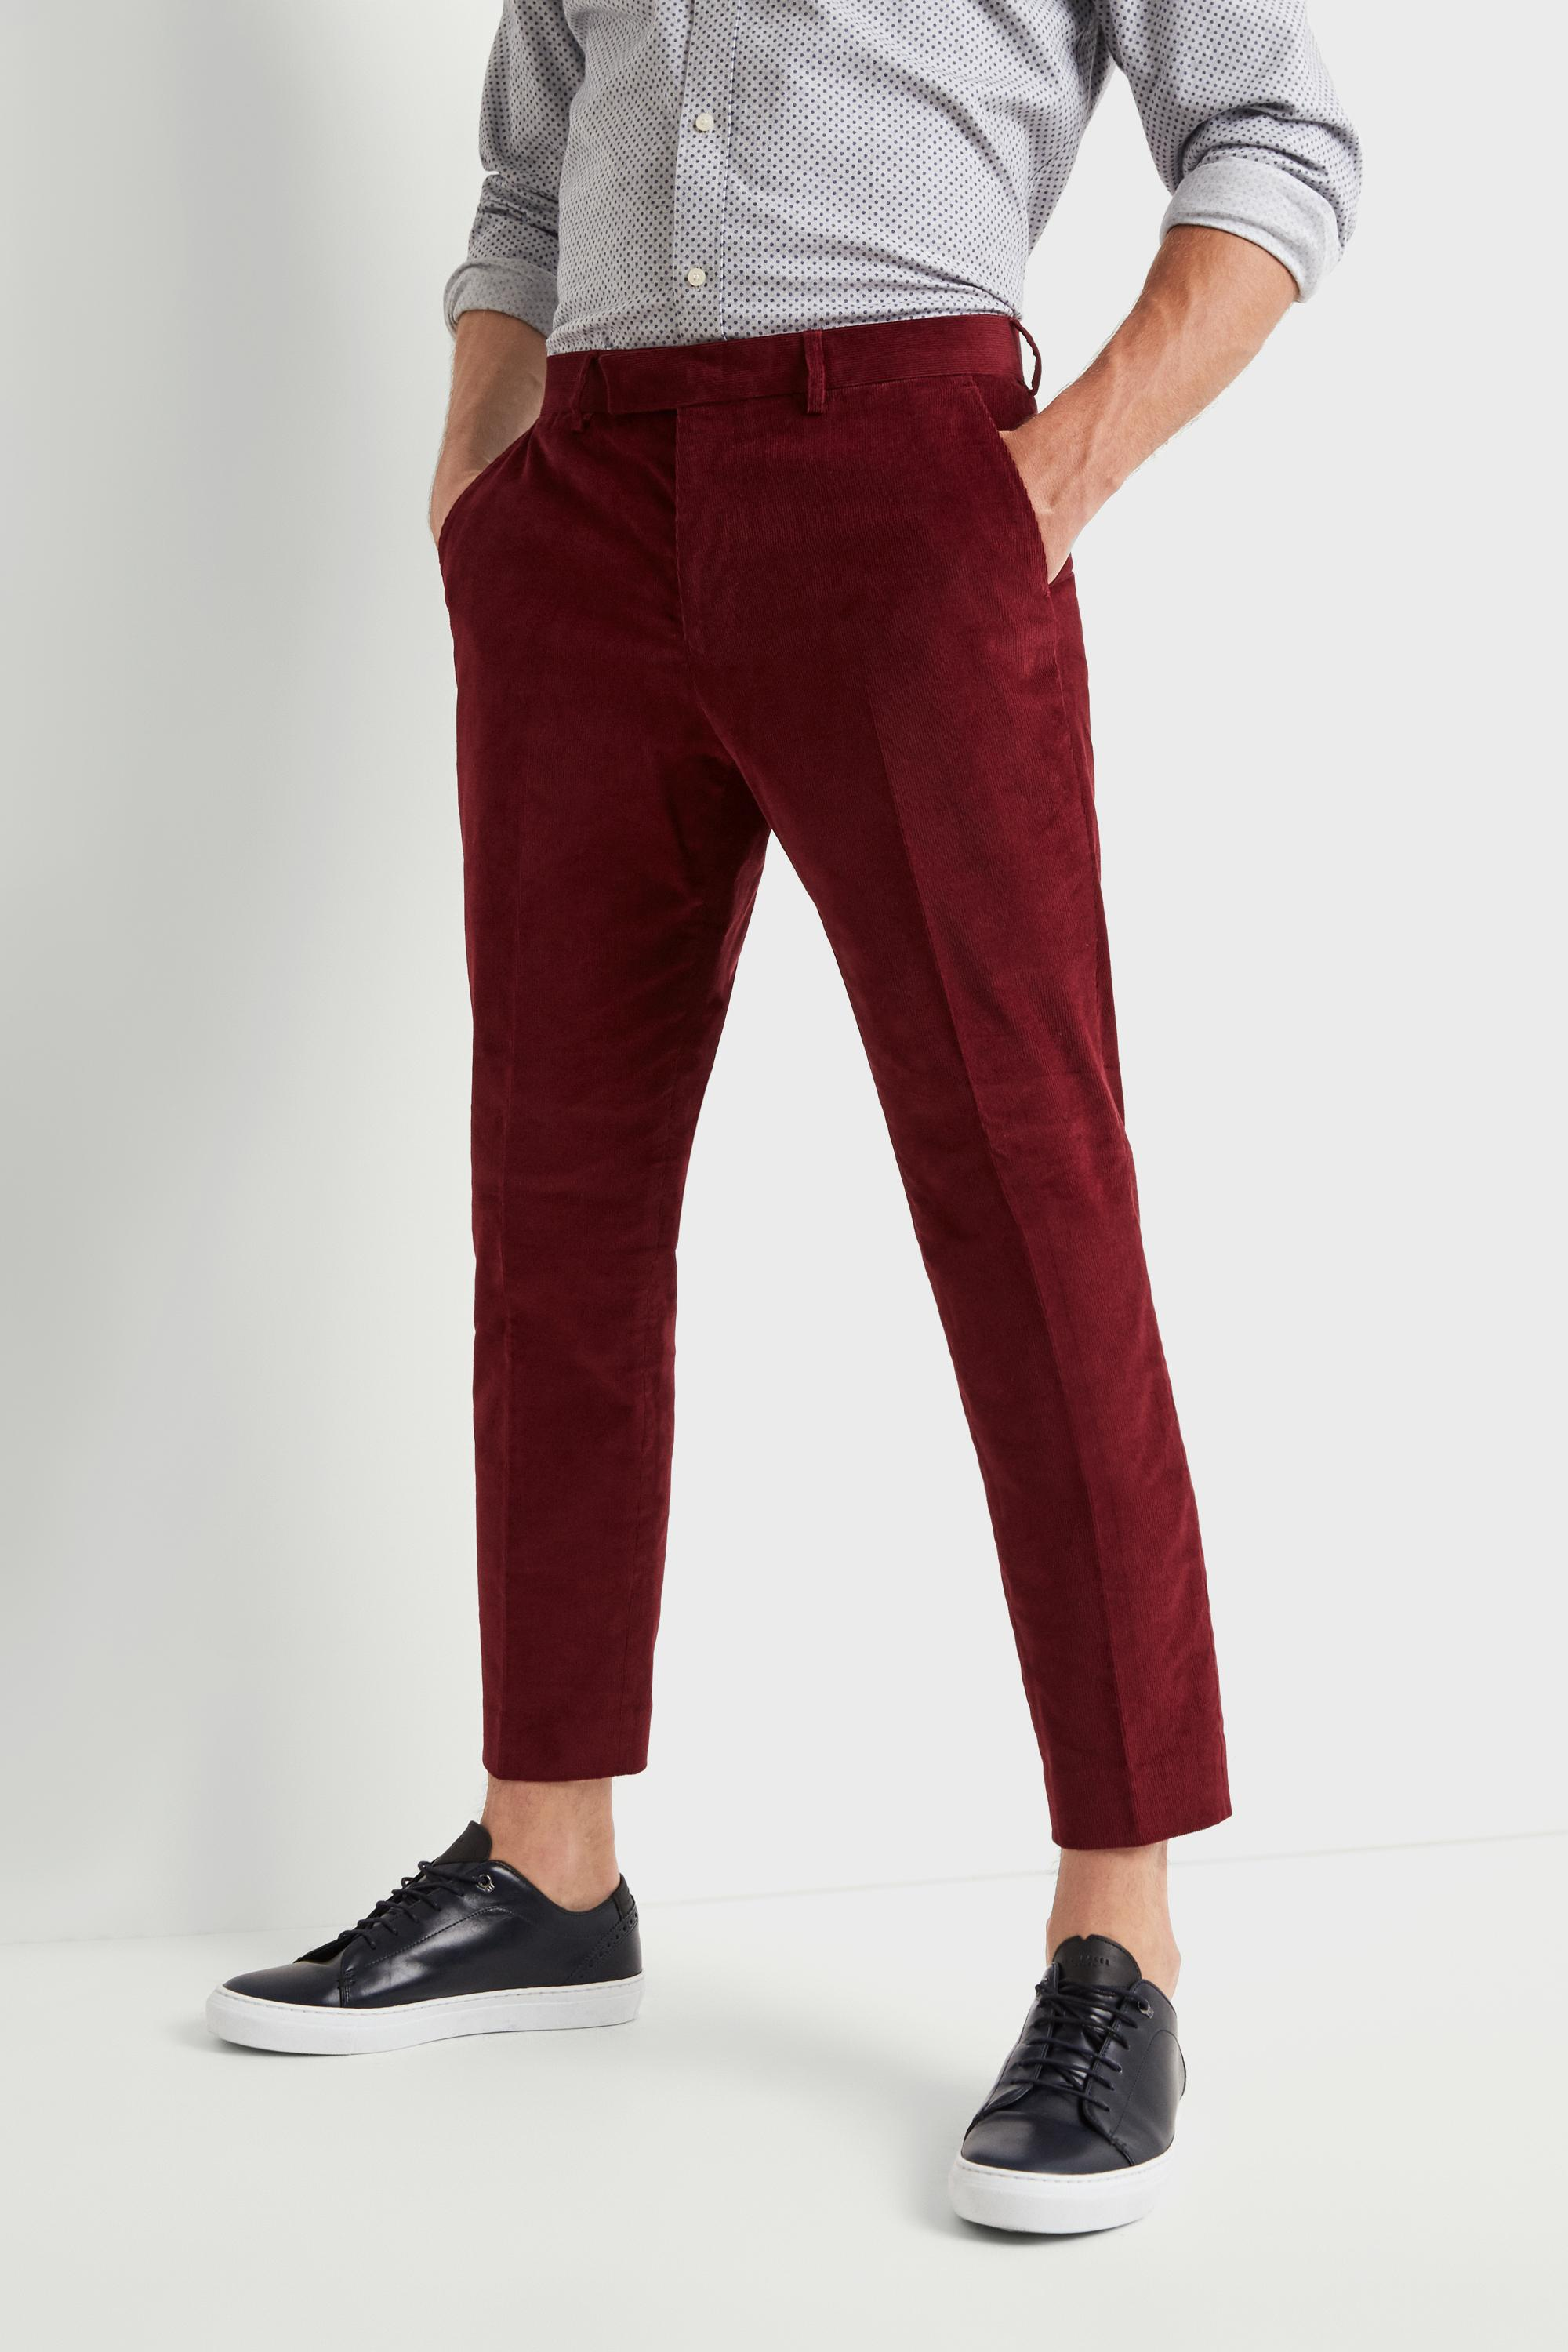 854717111d3 Moss London Skinny Fit Tapered Leg Red Corduroy Cropped Trousers in ...